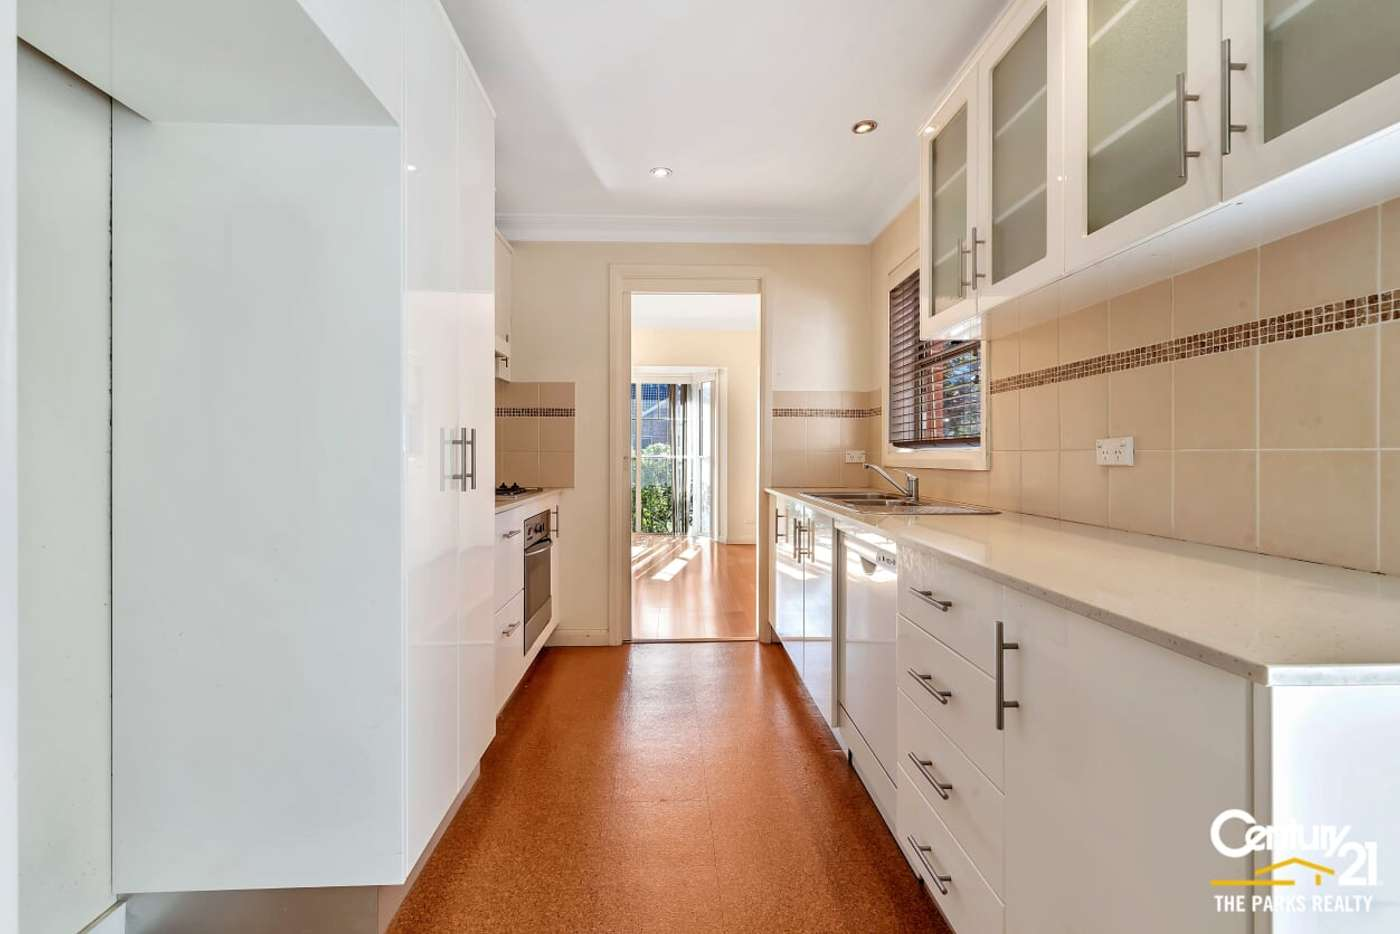 Sixth view of Homely house listing, 44/40 Strathalbyn Drive, Oatlands NSW 2117